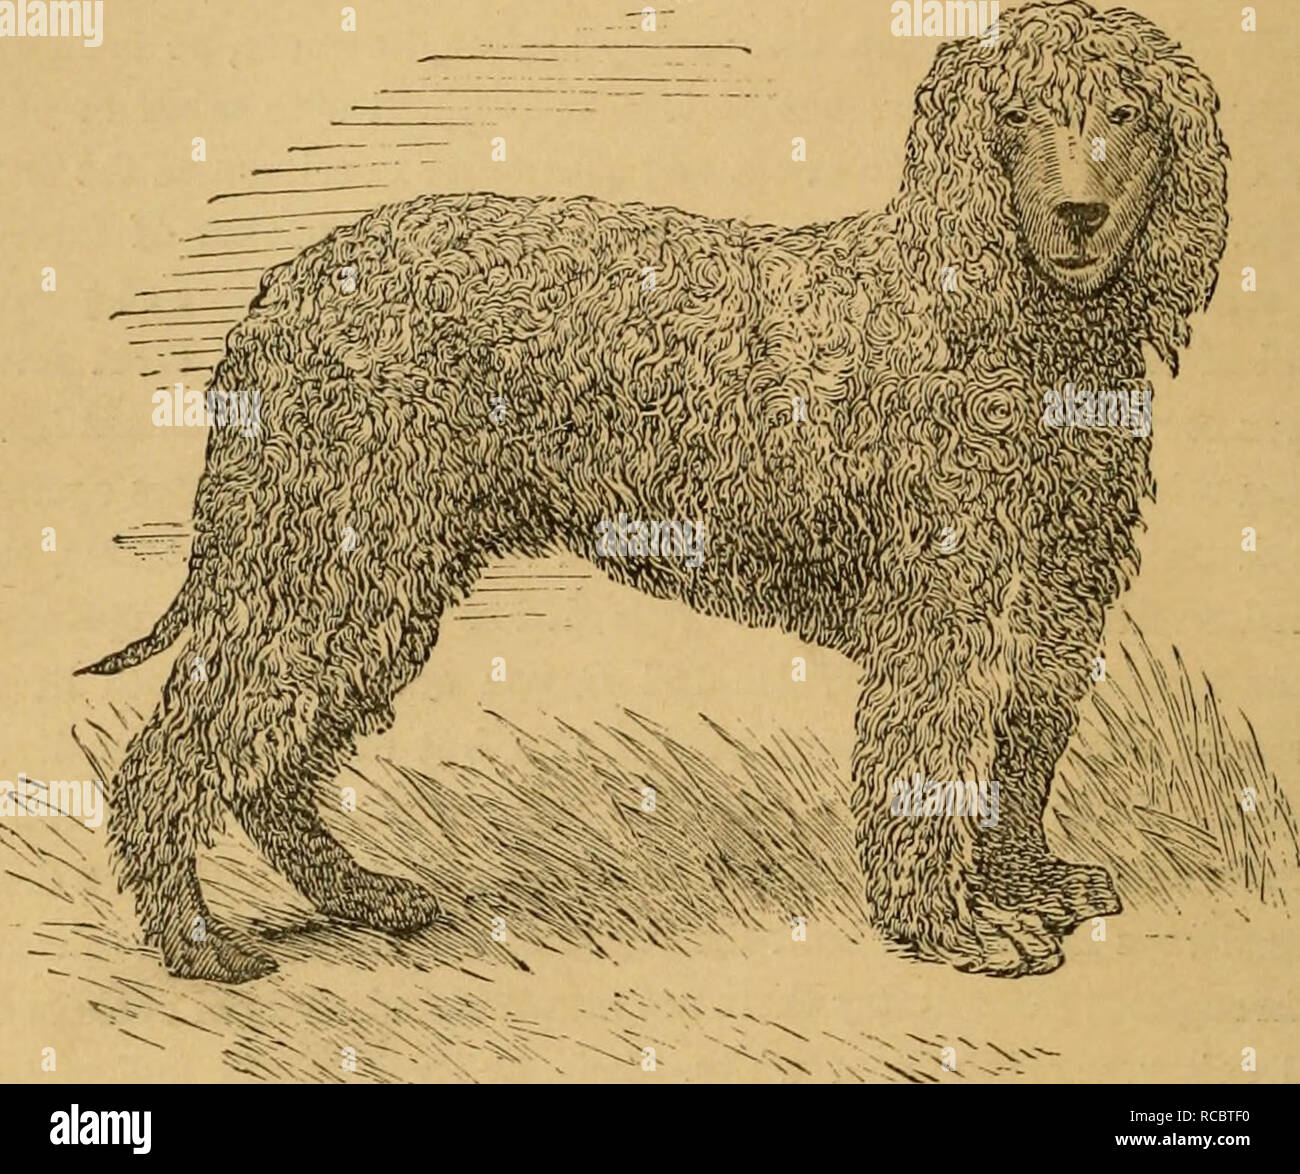 . The dogs of Great Britain, America, and other countries. Their breeding, training, and management in health and disease, comprising all the essential parts of the two standard works on the dog. Dog. [from old catalog]. 120 DOMESTICATED DOGS FOR THE GUJf.. Fig. 31.—IKISH WATER SPANIEL, KAKE. THE WATER SPANIEL. Wate?- Spaniels are commonly said to have web-feet, and this point is often made a ground of distinction from other dogs, but the fact is that all dogs have their toes united by membranes in the same way, the only distinction between the water and land dogs being that the former have la - Stock Image